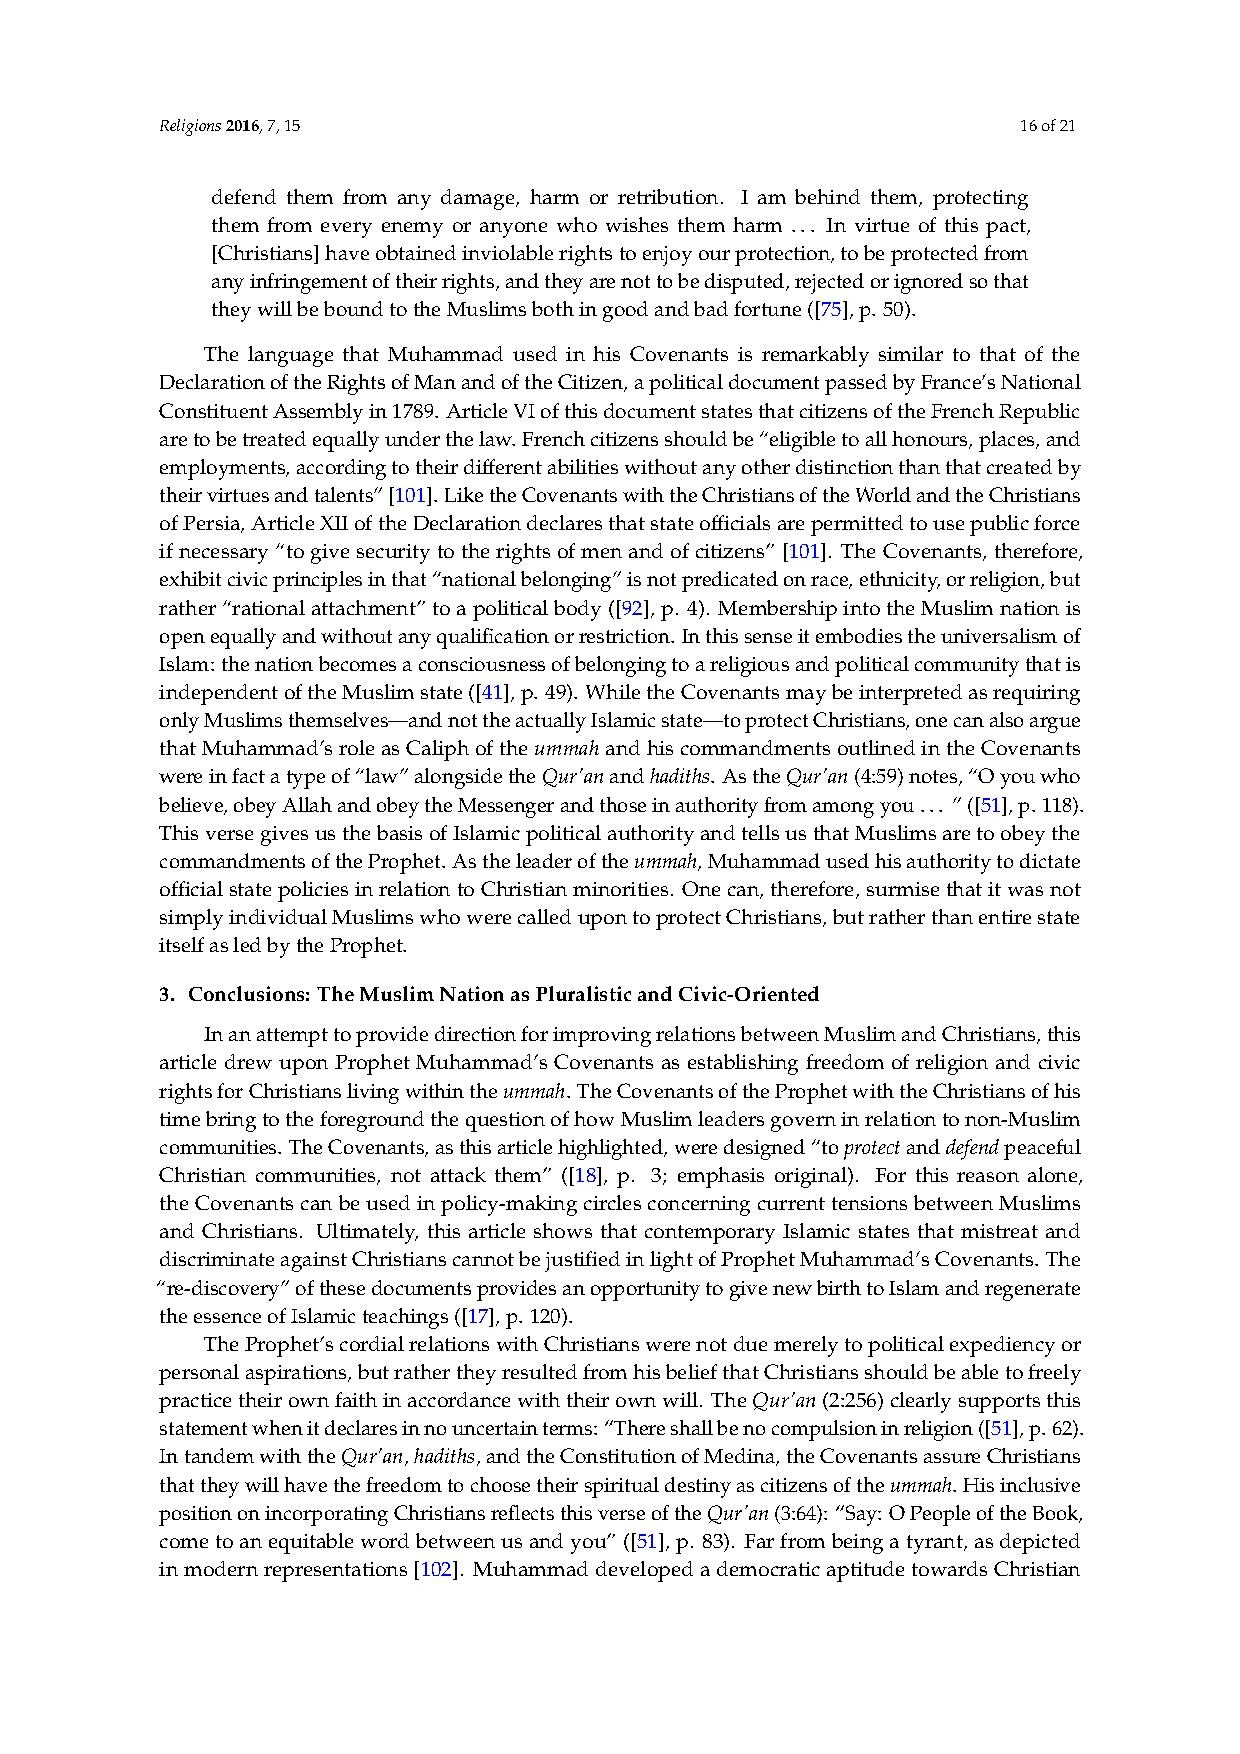 Page An Analysis Of Prophet Muhammad S Covenants With Christians Pdf